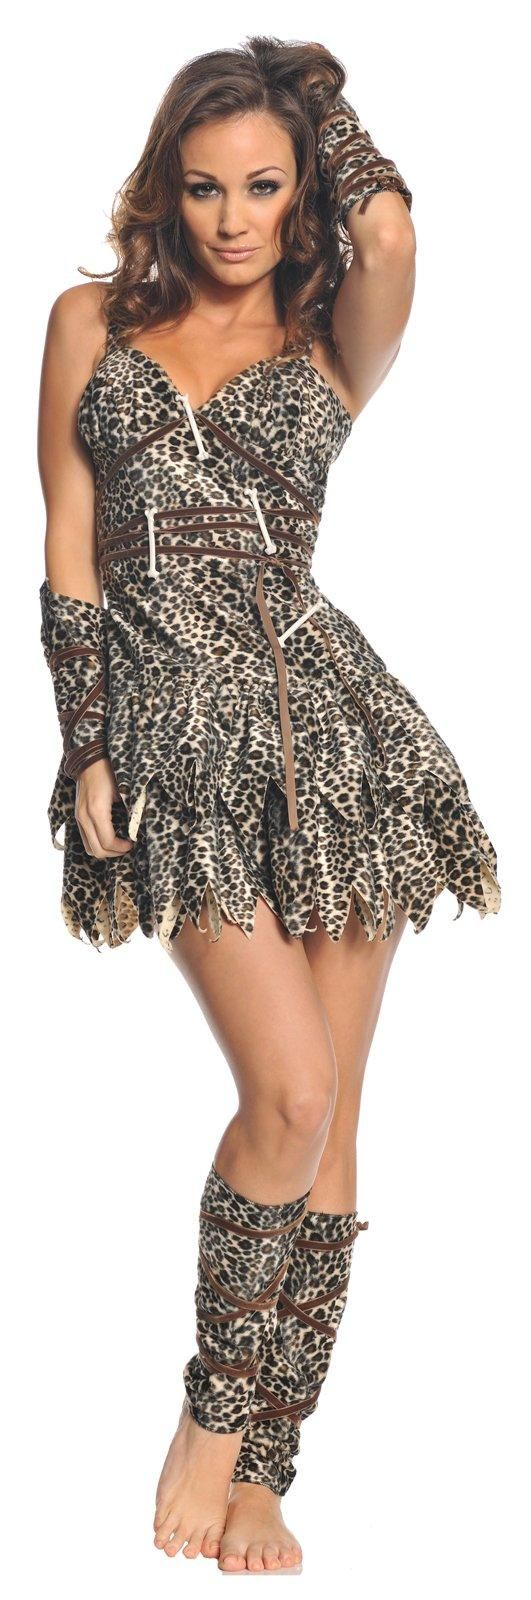 Goin' Clubbin Cave Woman Costume from Buycostumes.com